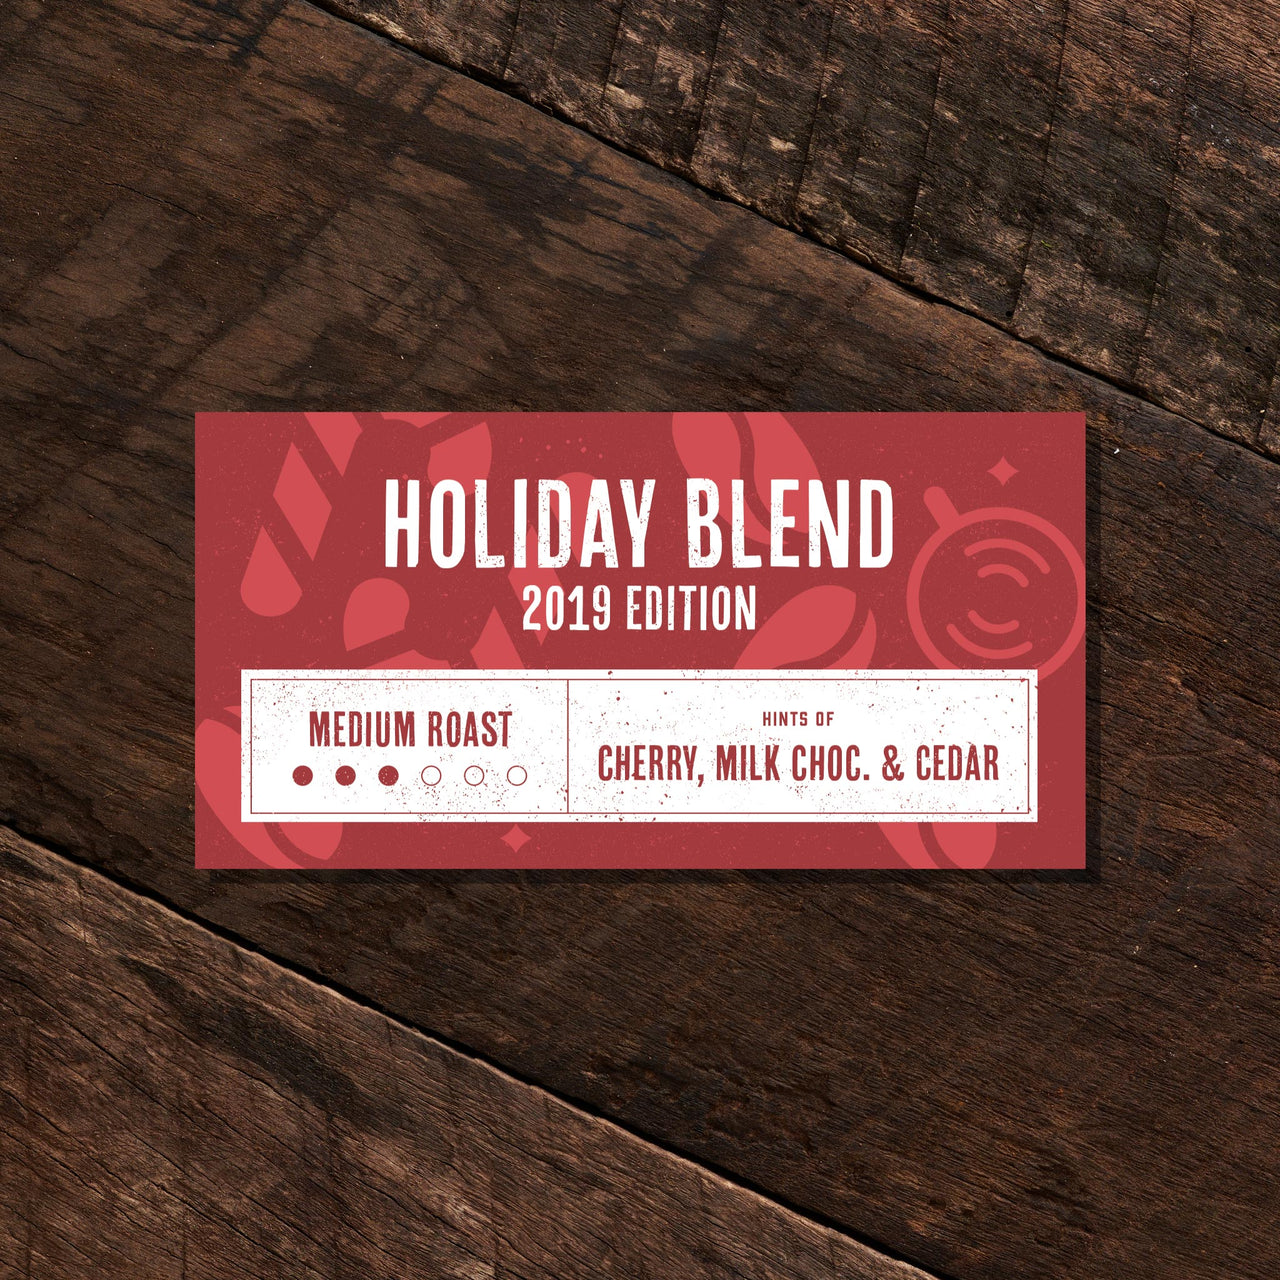 Holiday Blend 2019 Edition- Medium Roast